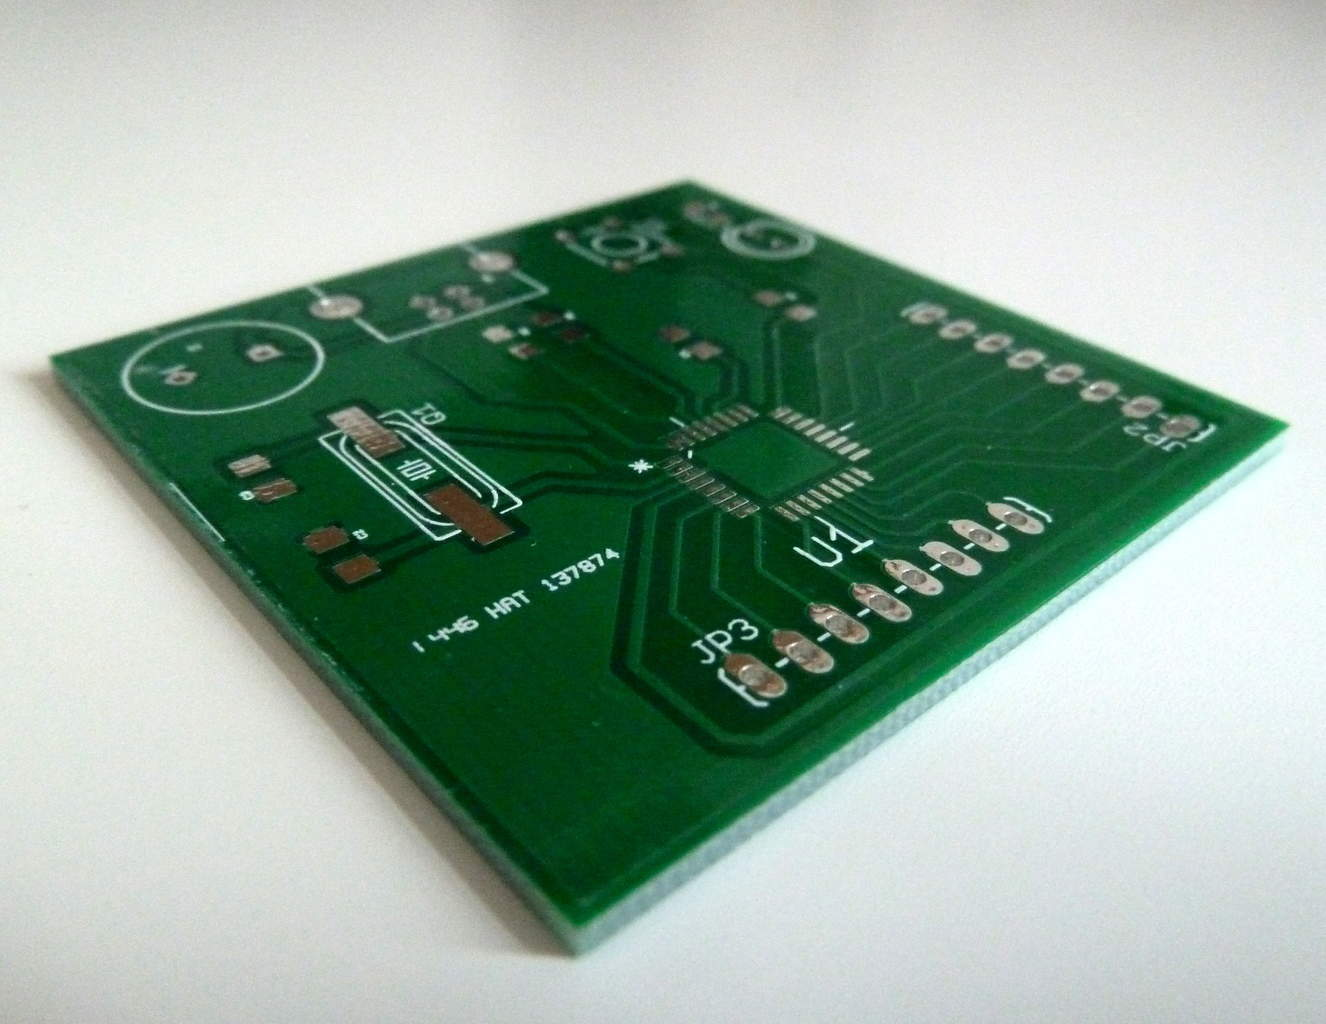 Microcontroller Tutorial 5 Soldering And Programming Here Is The Final Circuit Image With Extra Thick Traces Large Pads Pcb